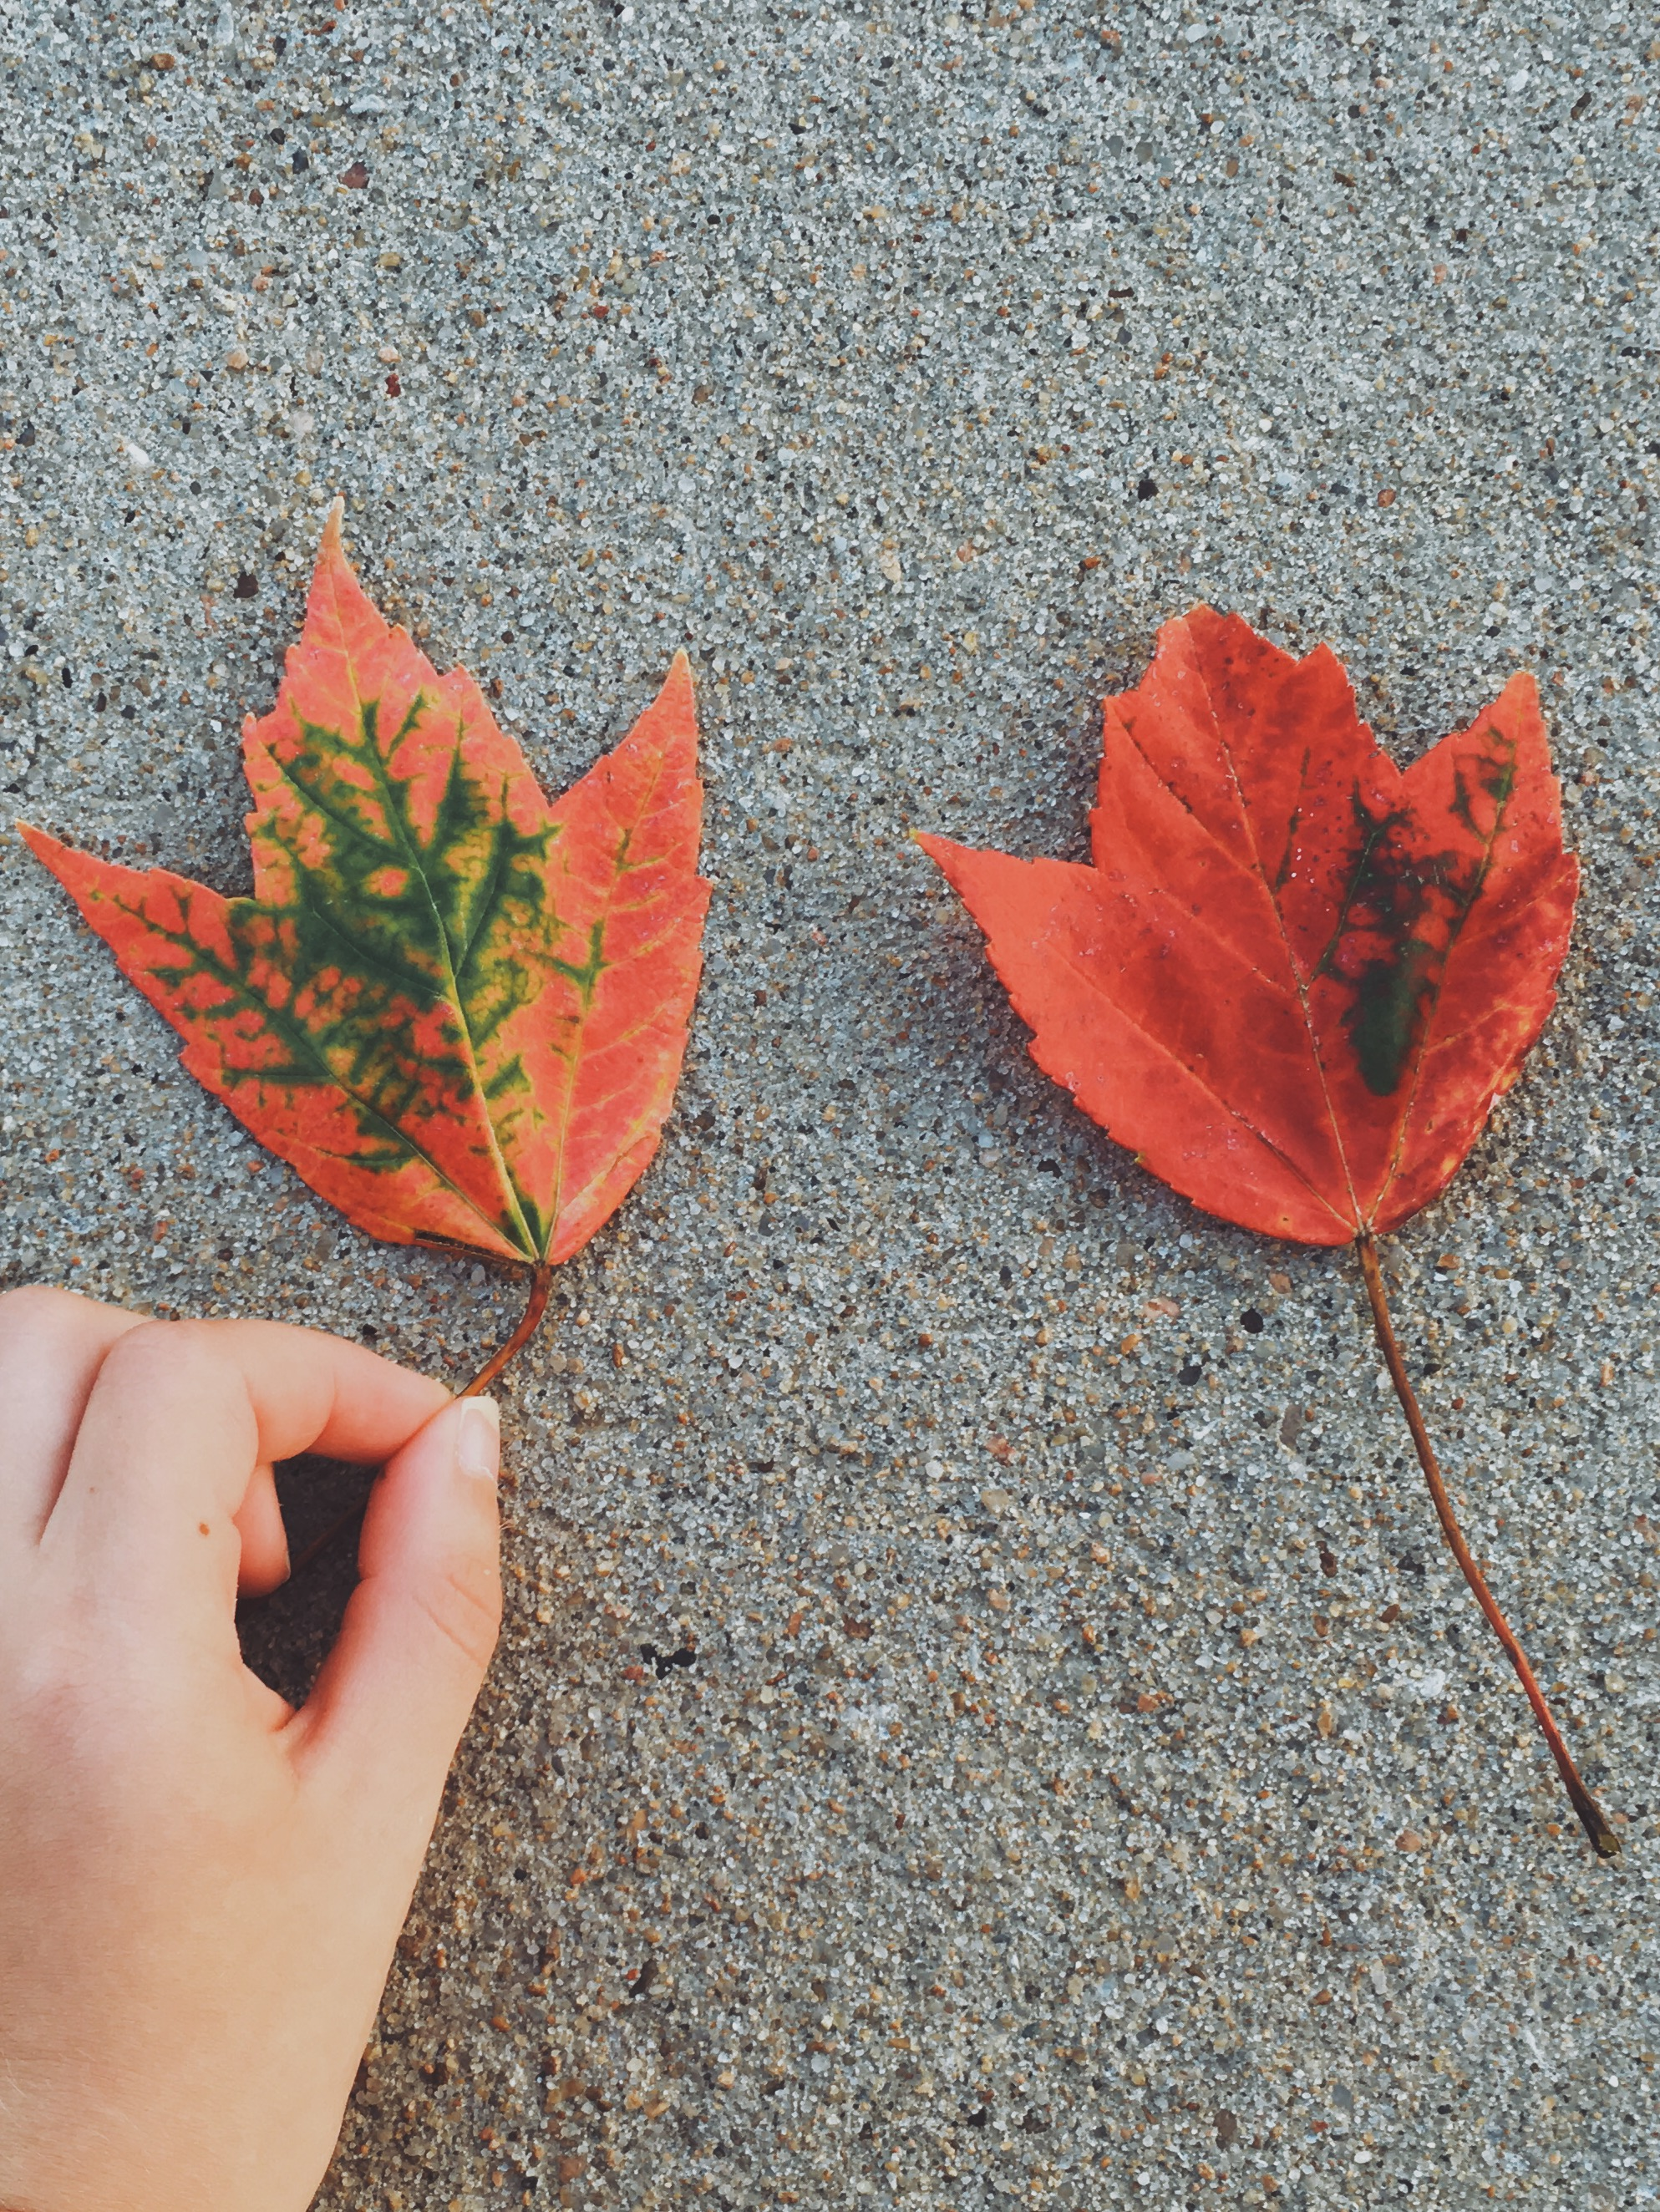 Our sweet niece and her leaves (Kansas, September)